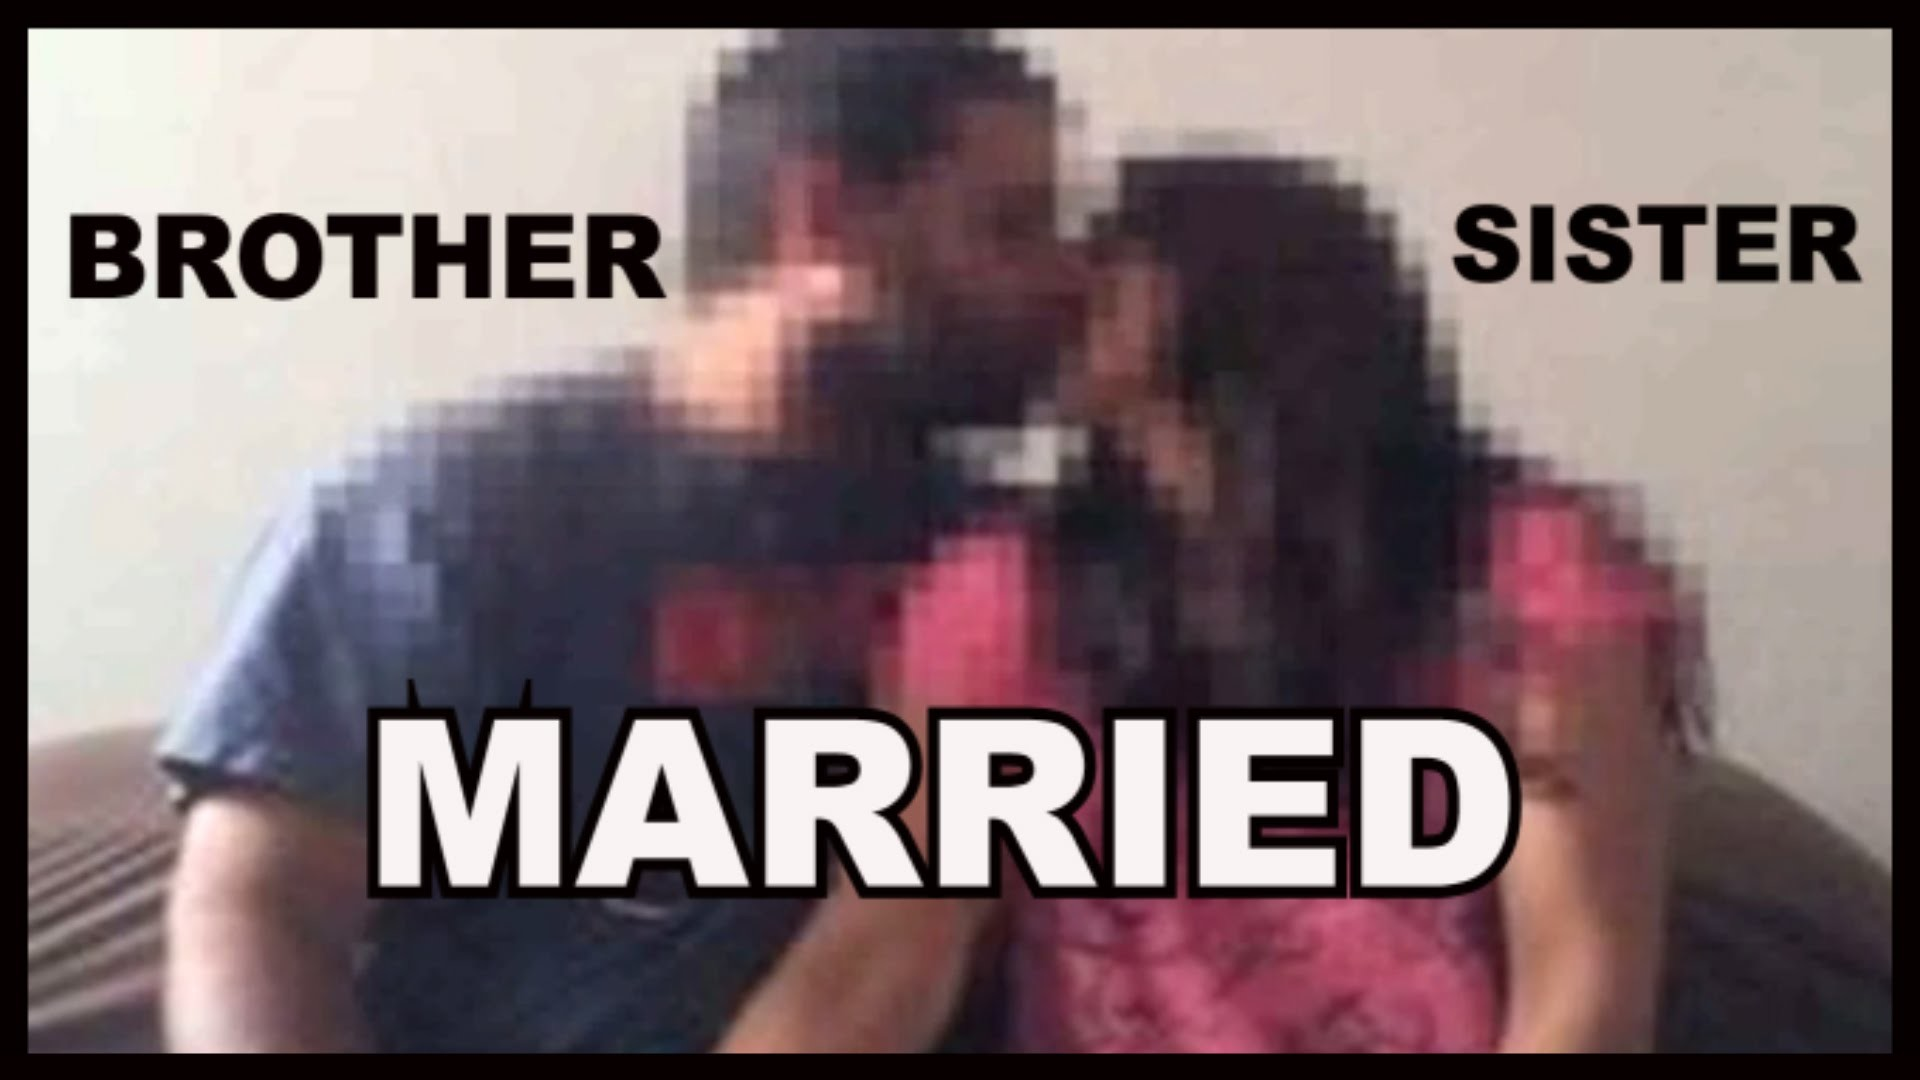 This Brother Is Sleeping With His Sister – And He Married Her – YouTube